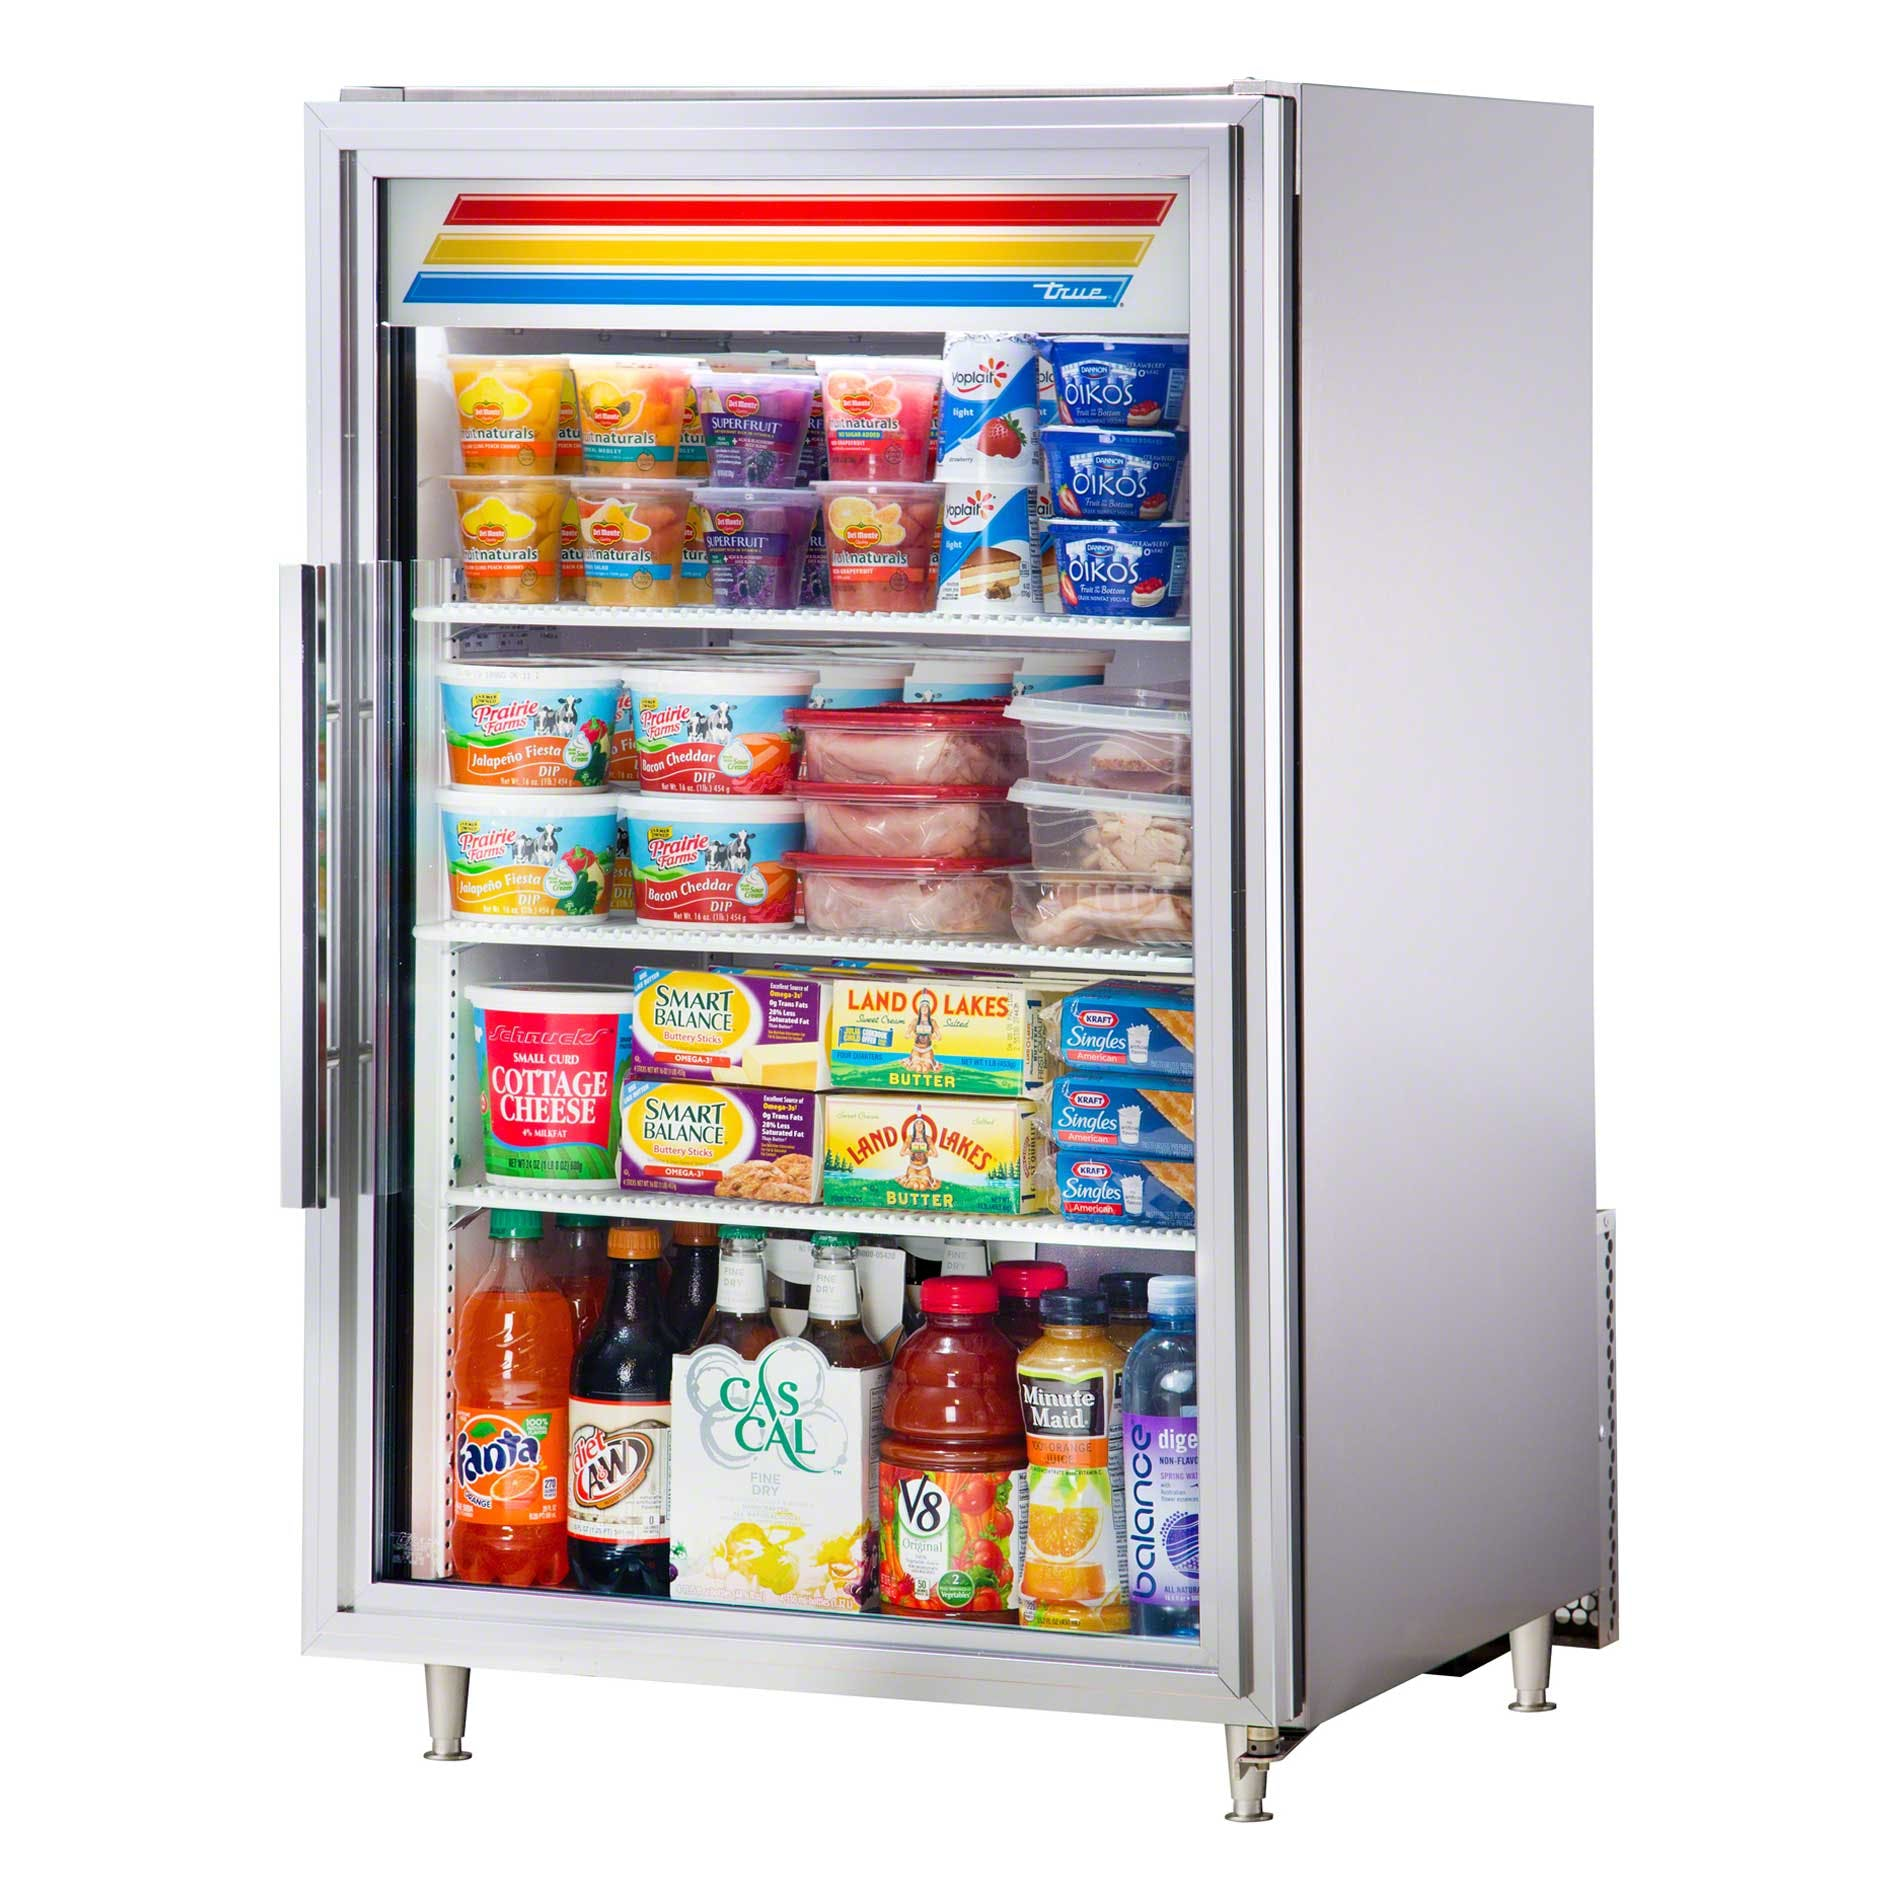 "True - GDM-7-S-LD 24"" Countertop Glass Door Merchandiser Refrigerator LED Commercial refrigerator sold by Food Service Warehouse"